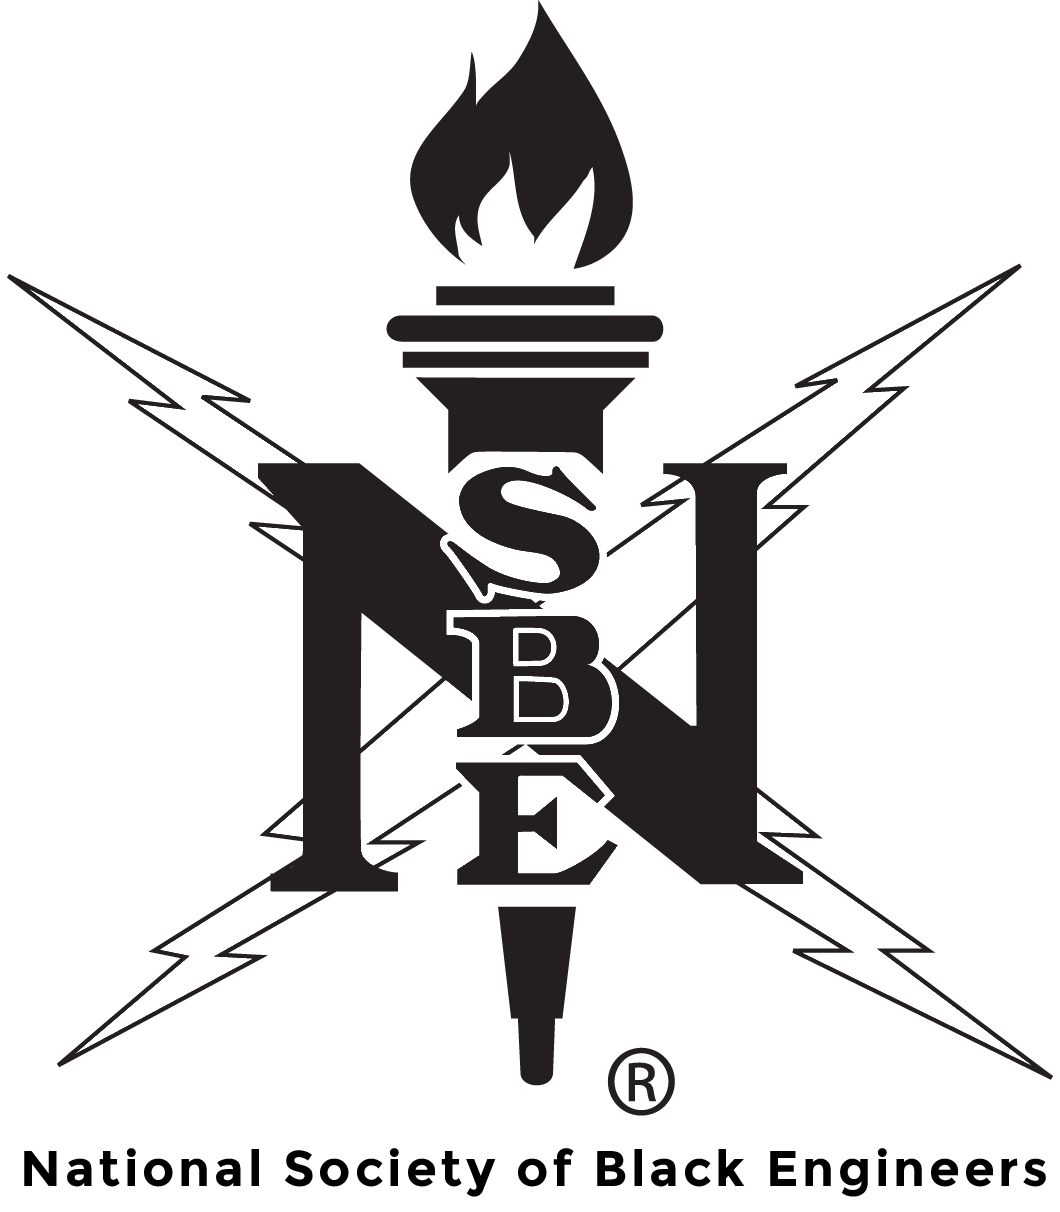 Engineering clipart black and white. Nsbe logo licensing national